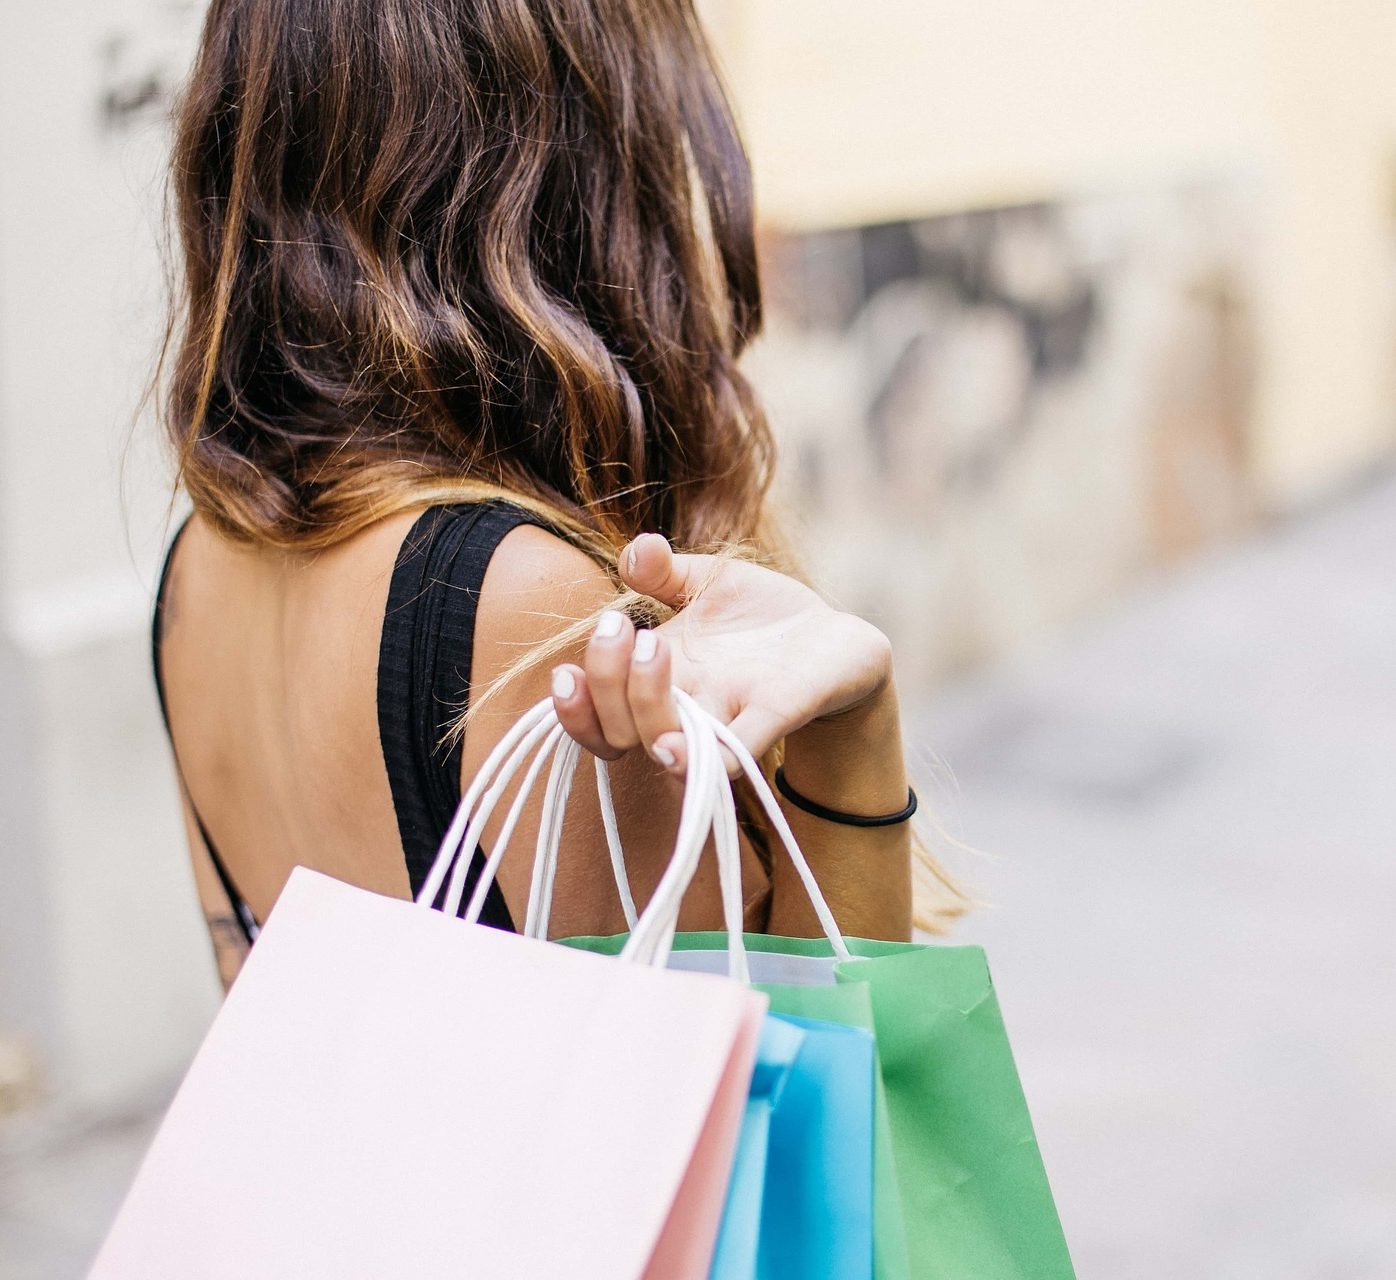 addiction-shopping-achat-compulsif-sens-analogie-bioanalogie-loi du principe